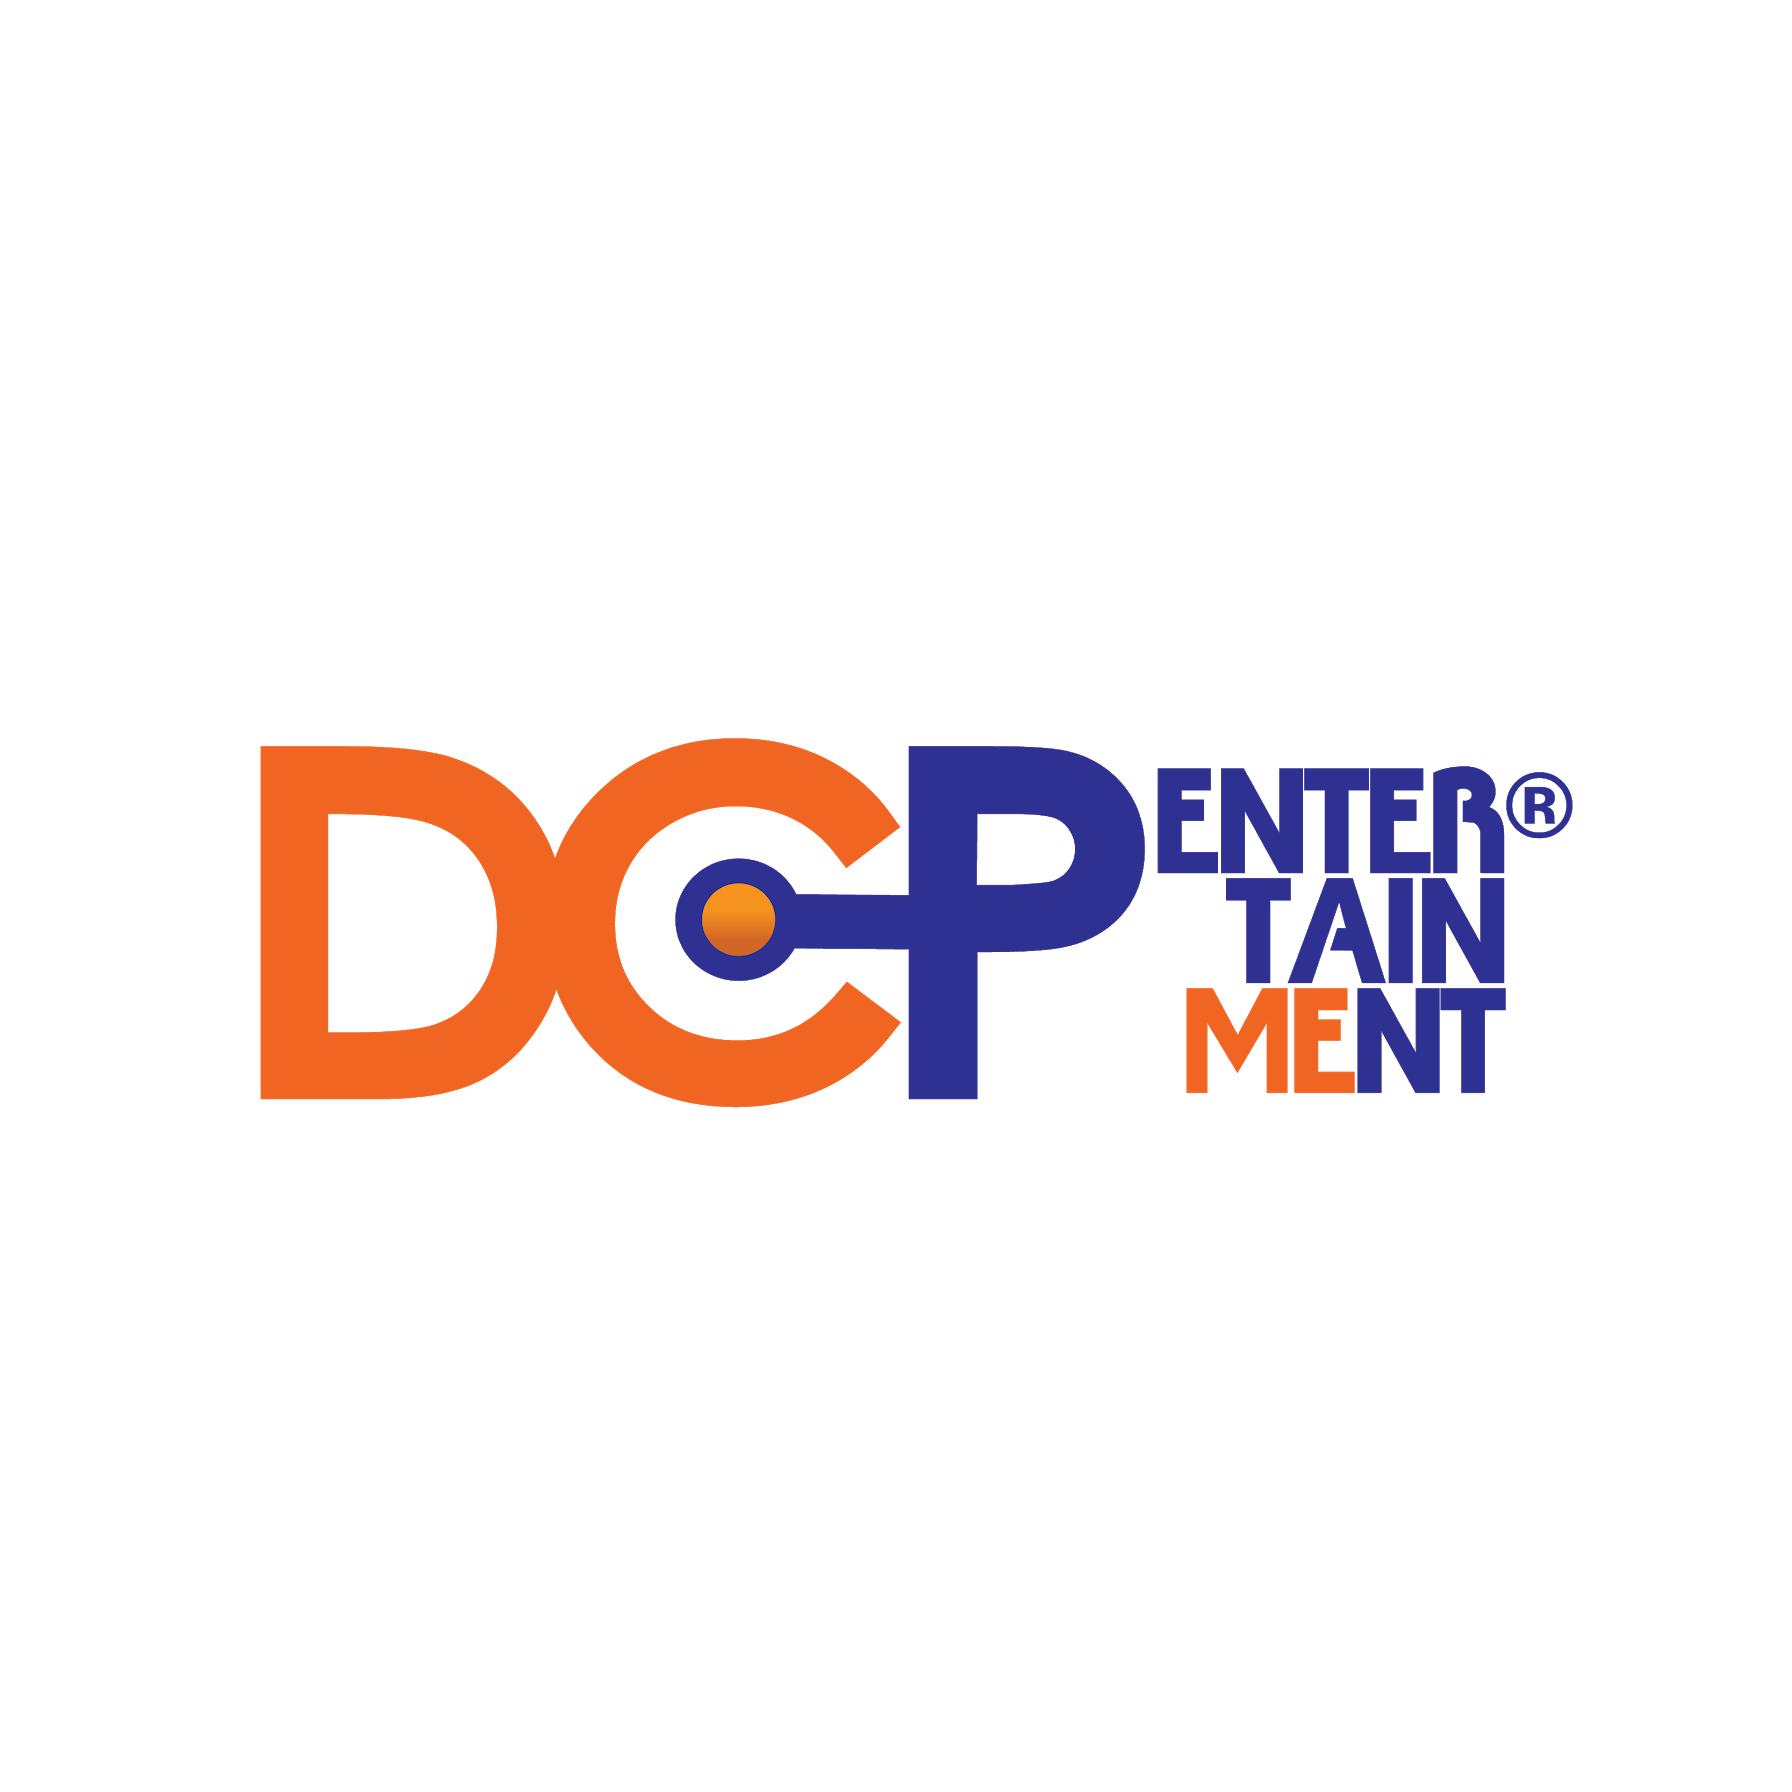 DCP Entertainment - Black Owned